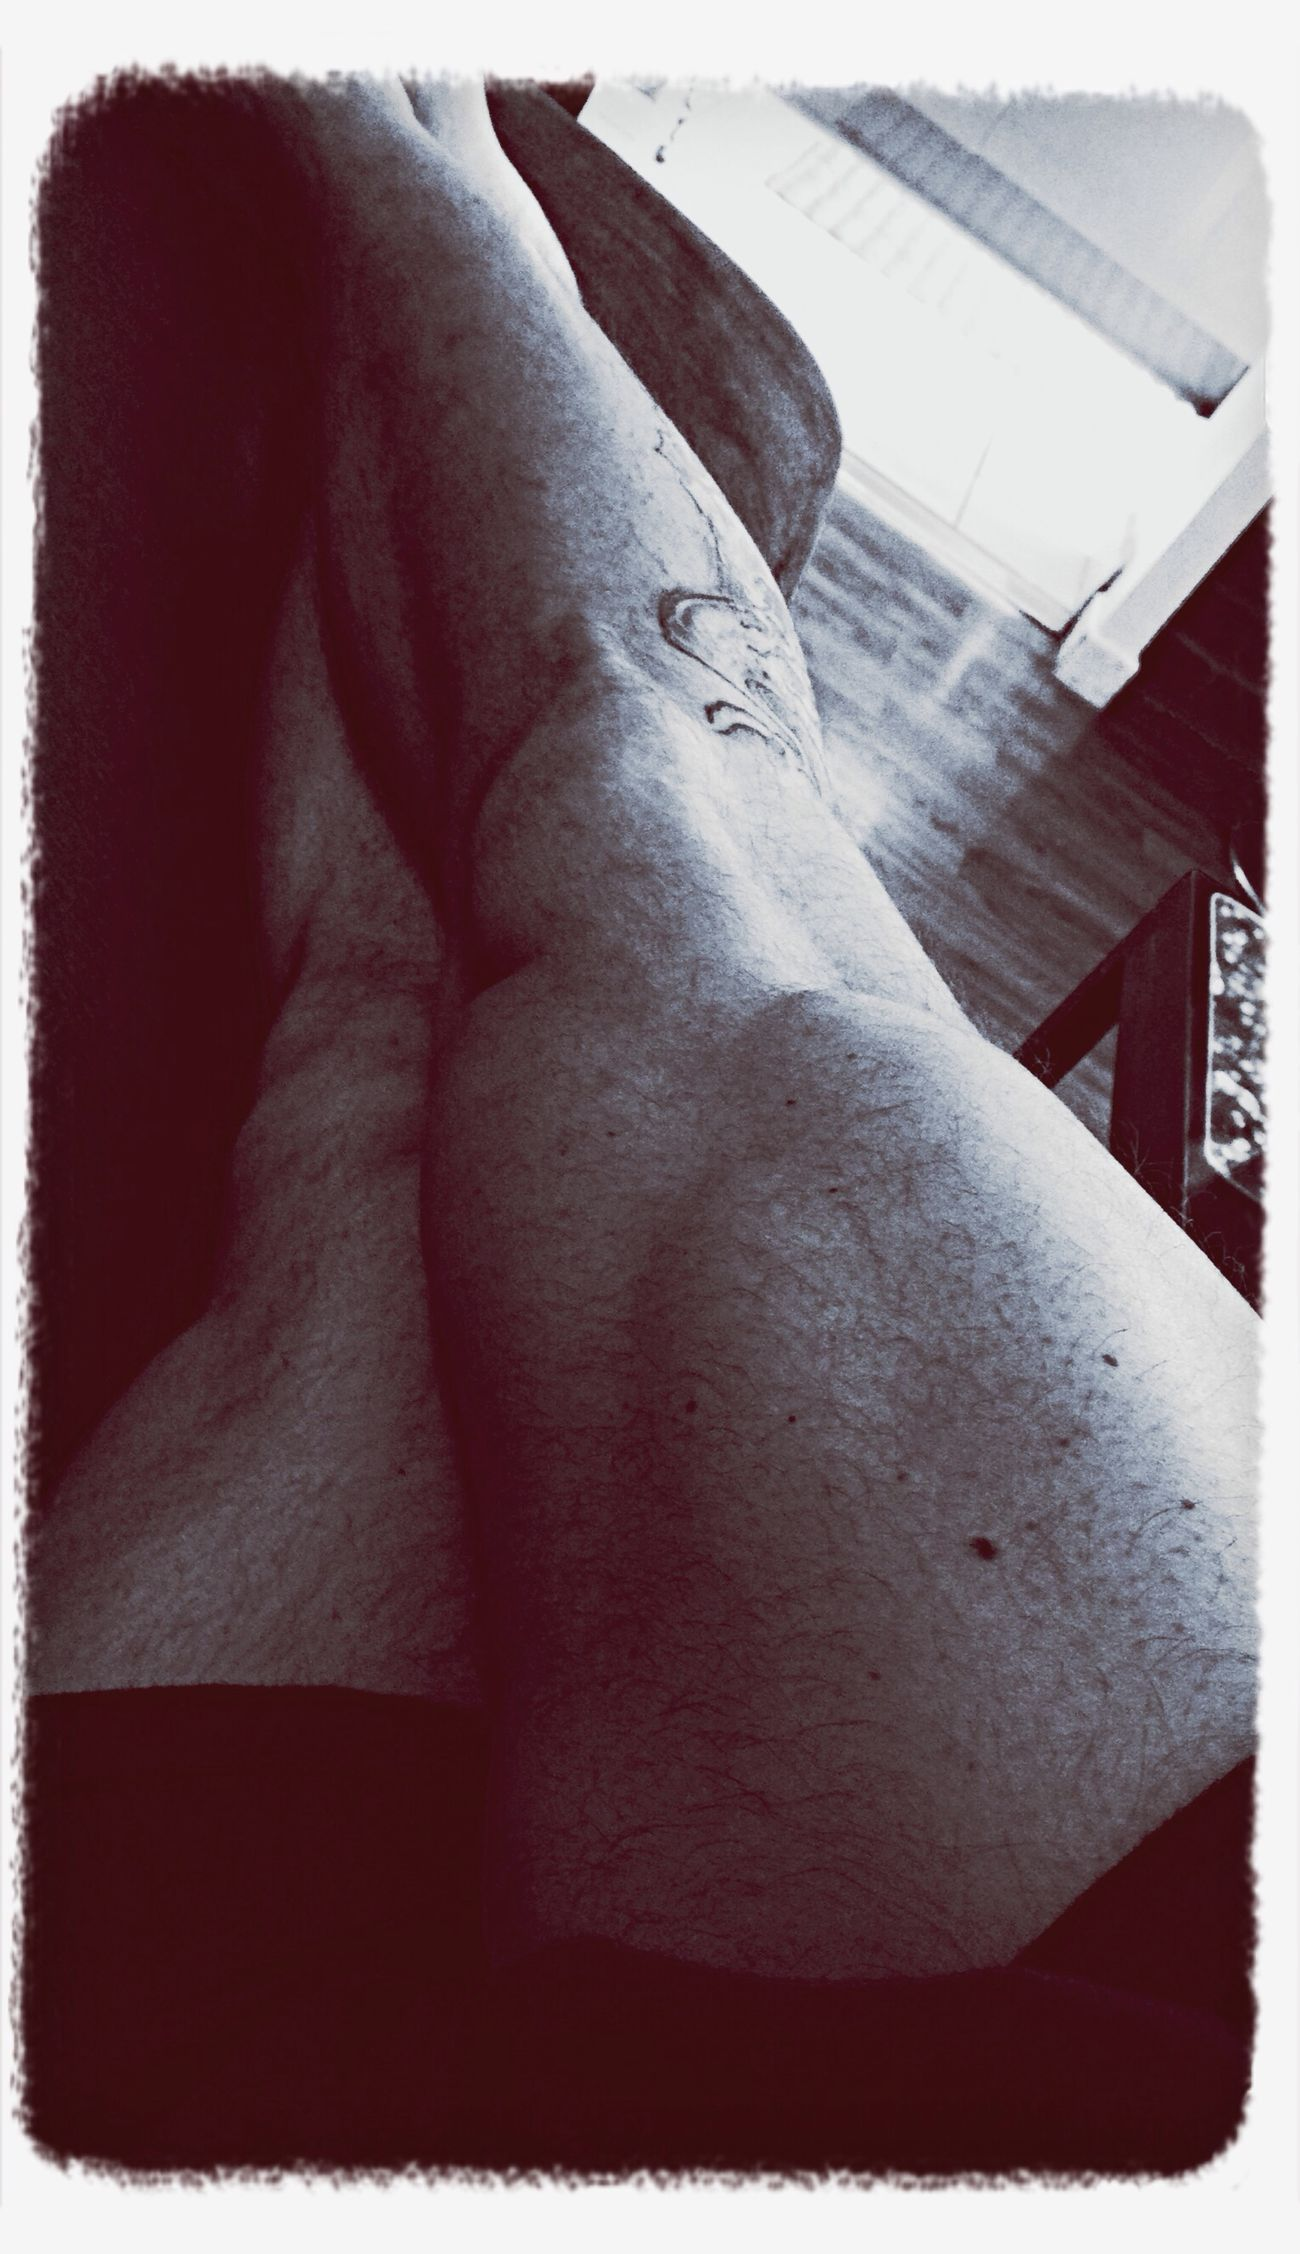 Sport Effort Determine Piscine #Futsal #Cuisse #Muscle #Tatoo #Tatouage #Cache !!